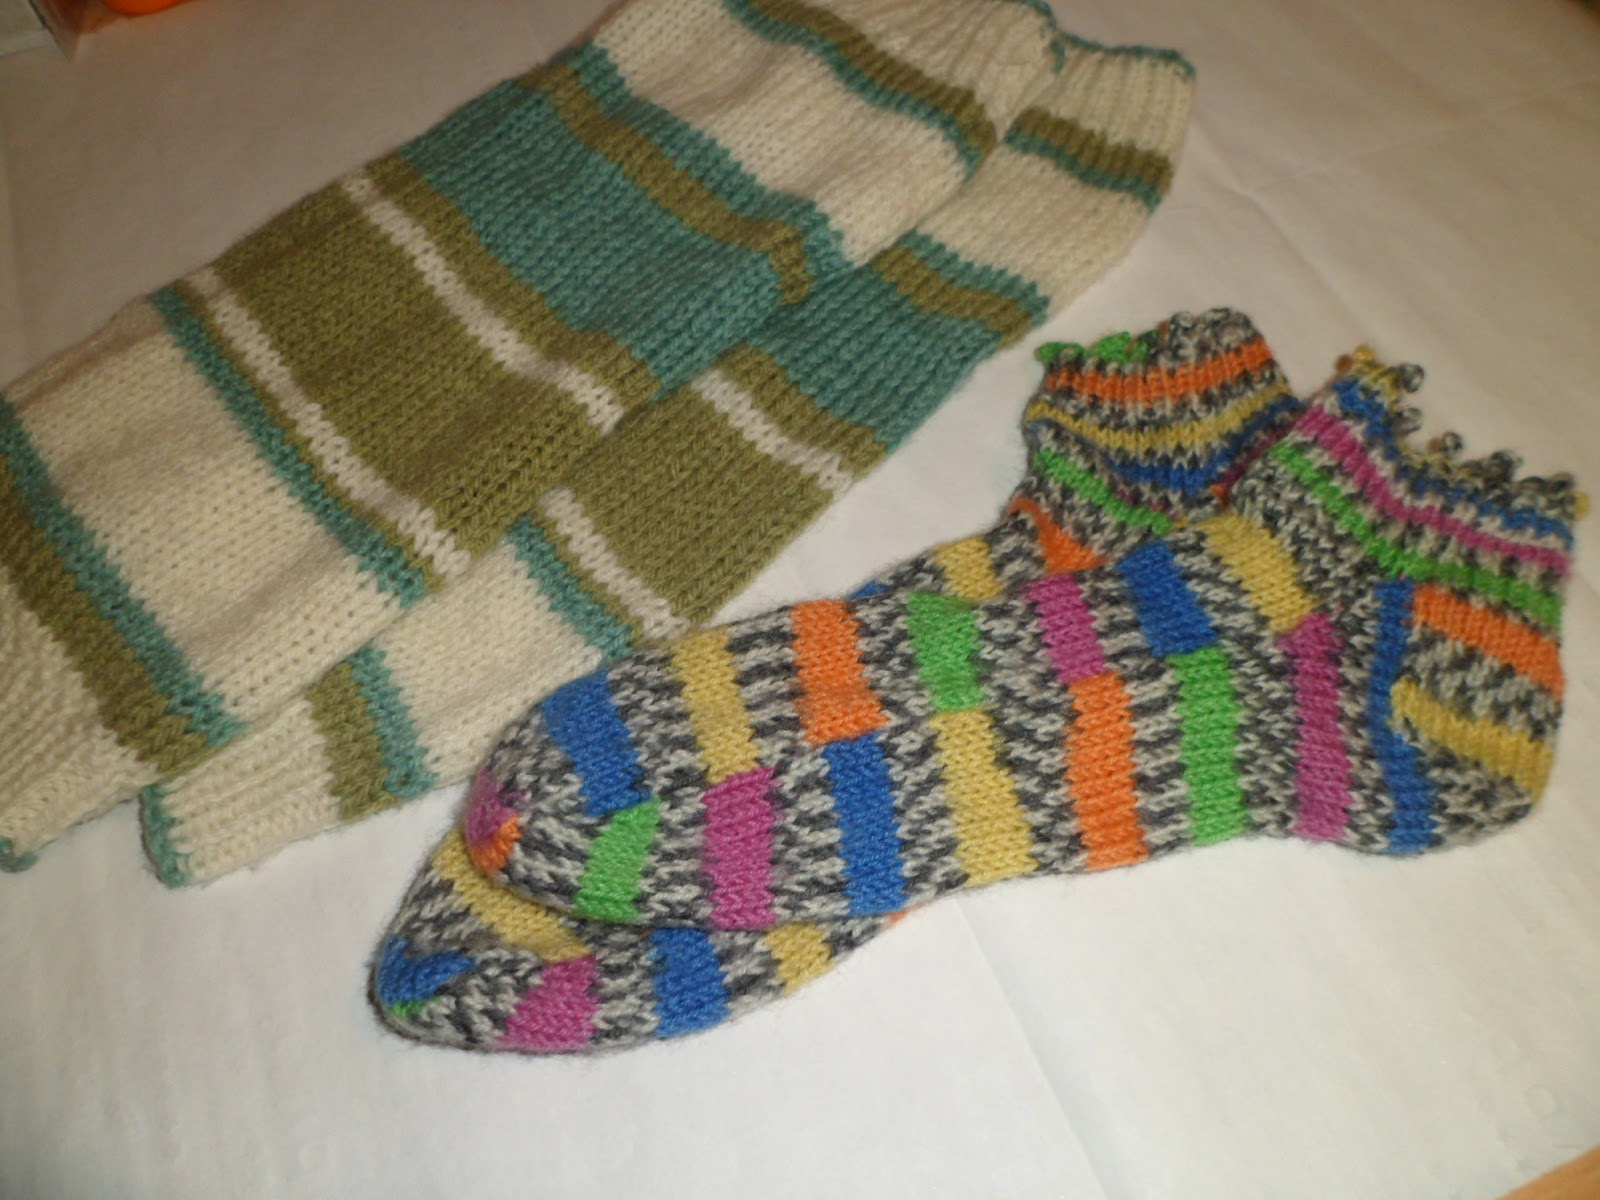 Knitted Leg Warmers Using Caron Cakes Yarn